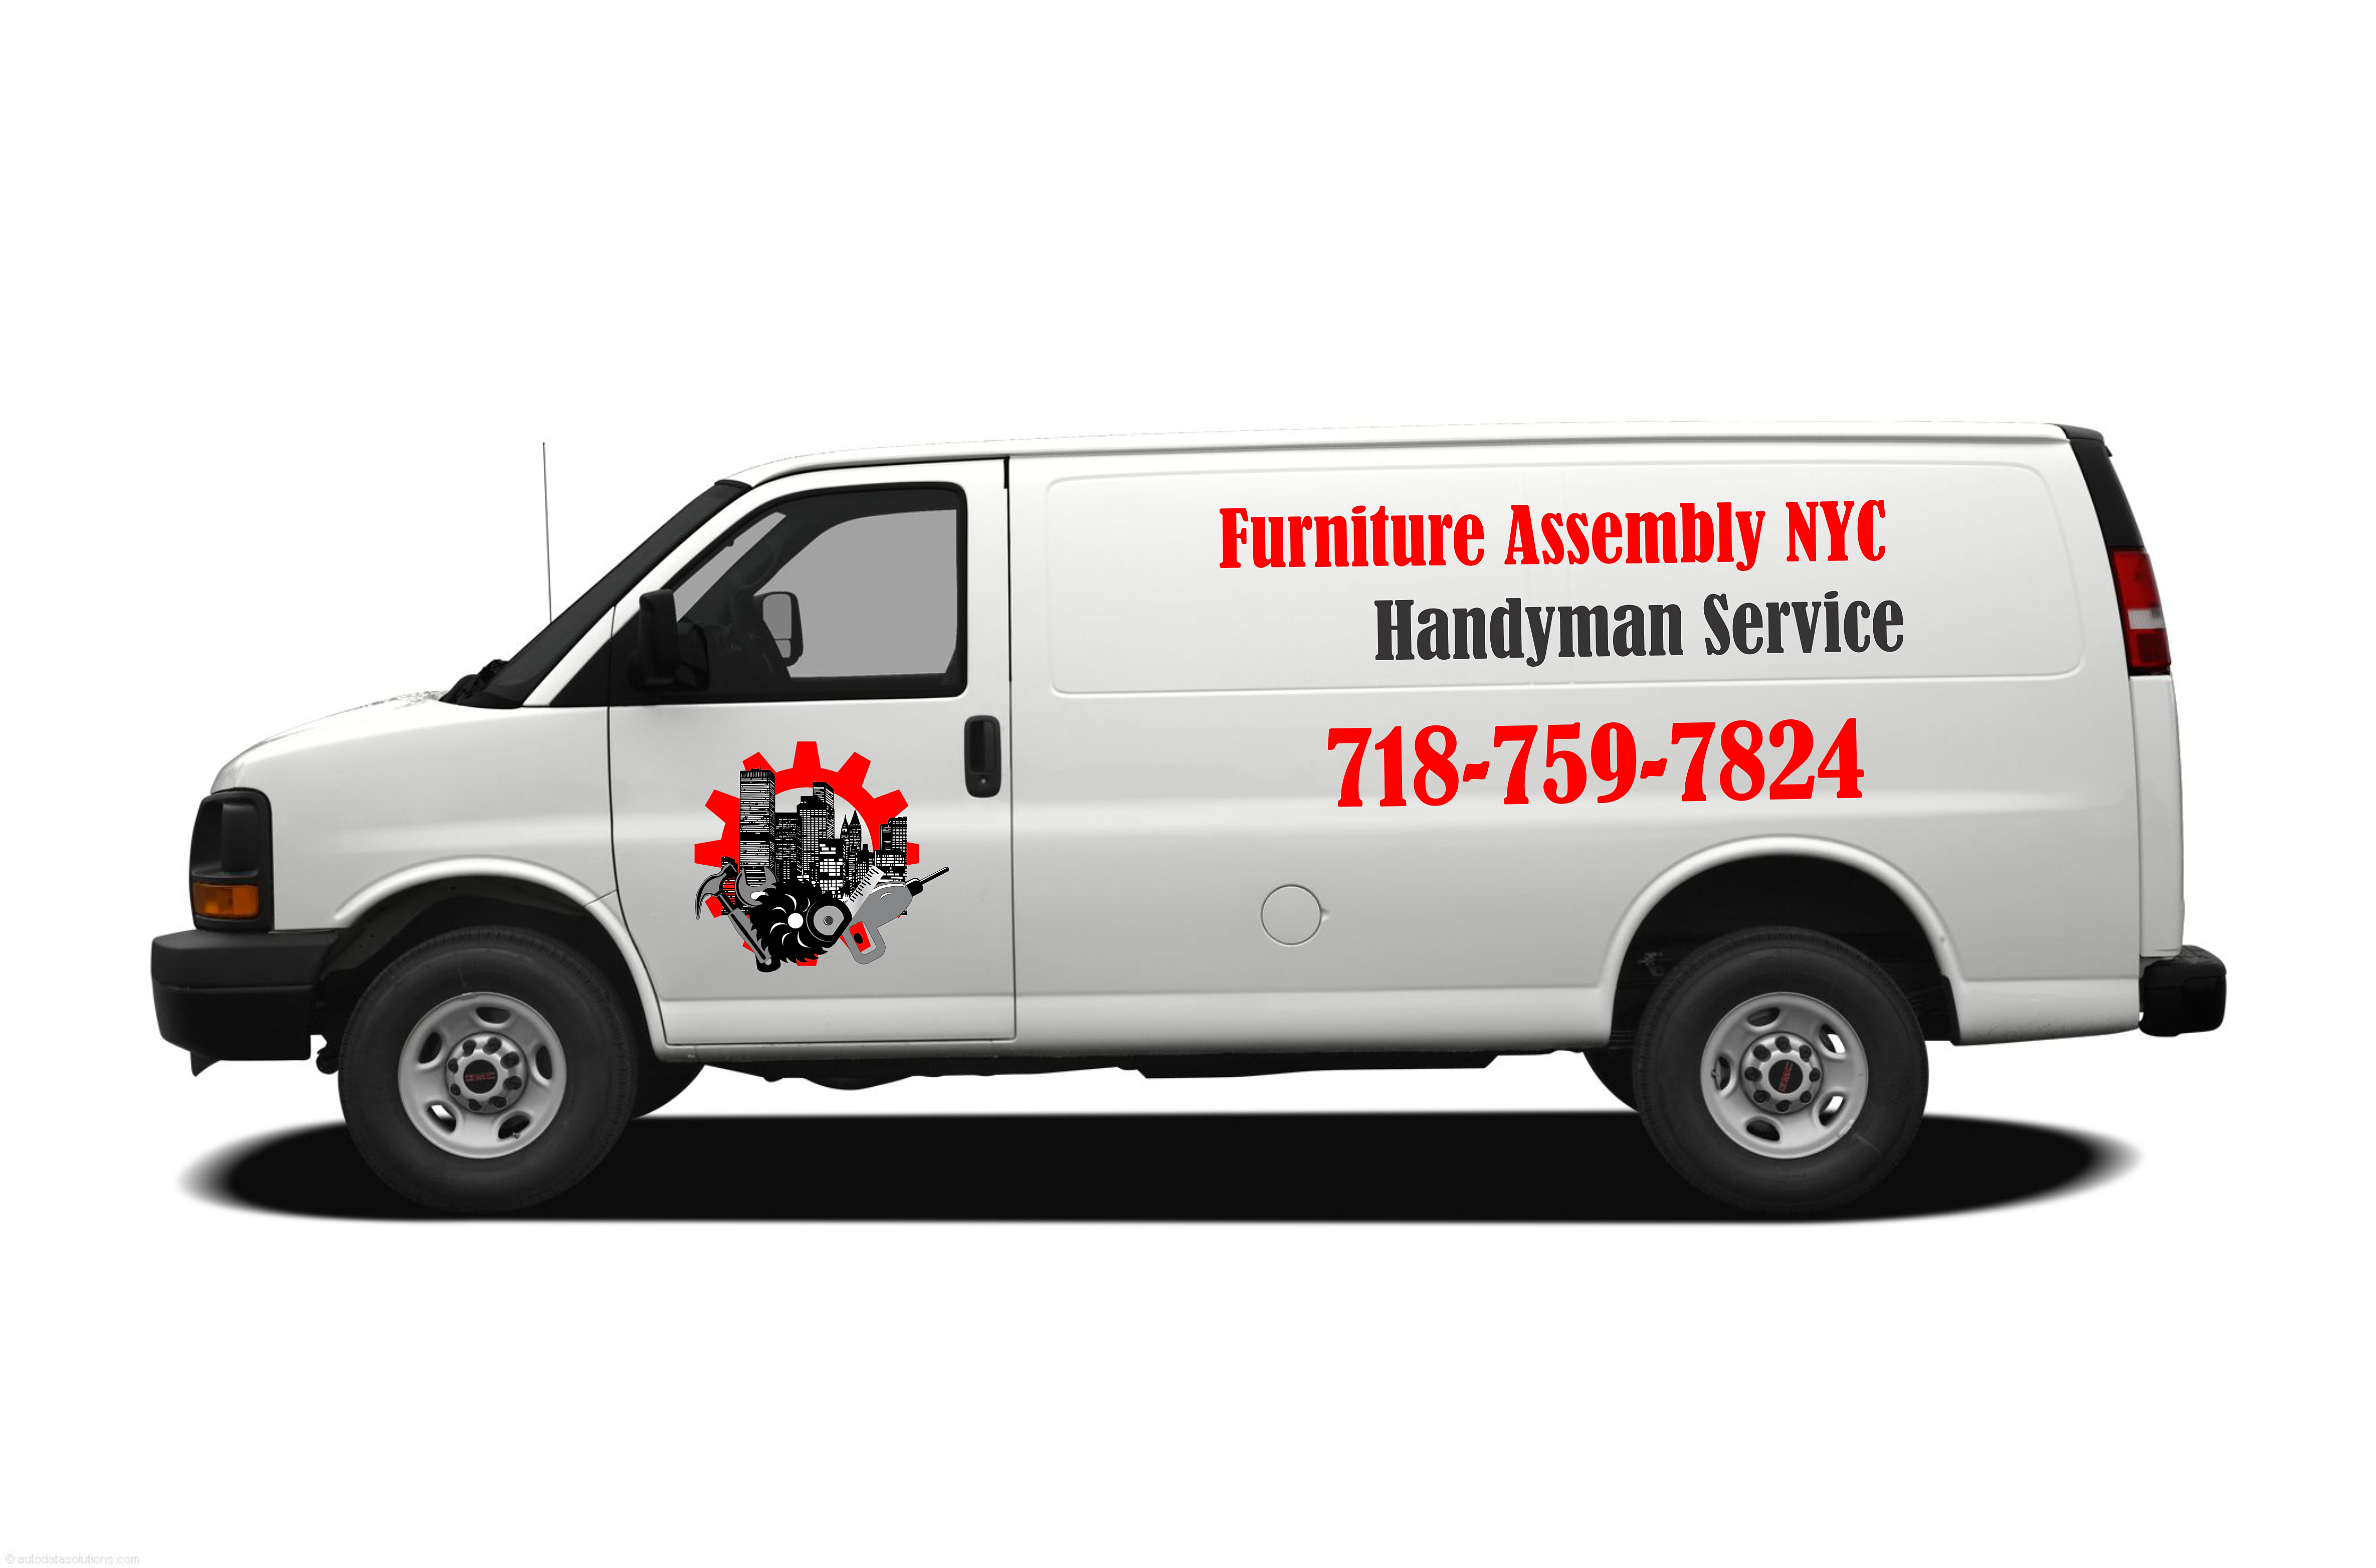 handyman service nyc IKEA furniture assembly office assembly. Home   Furniture Assembly NYC   Furniture Delivery Service NYC